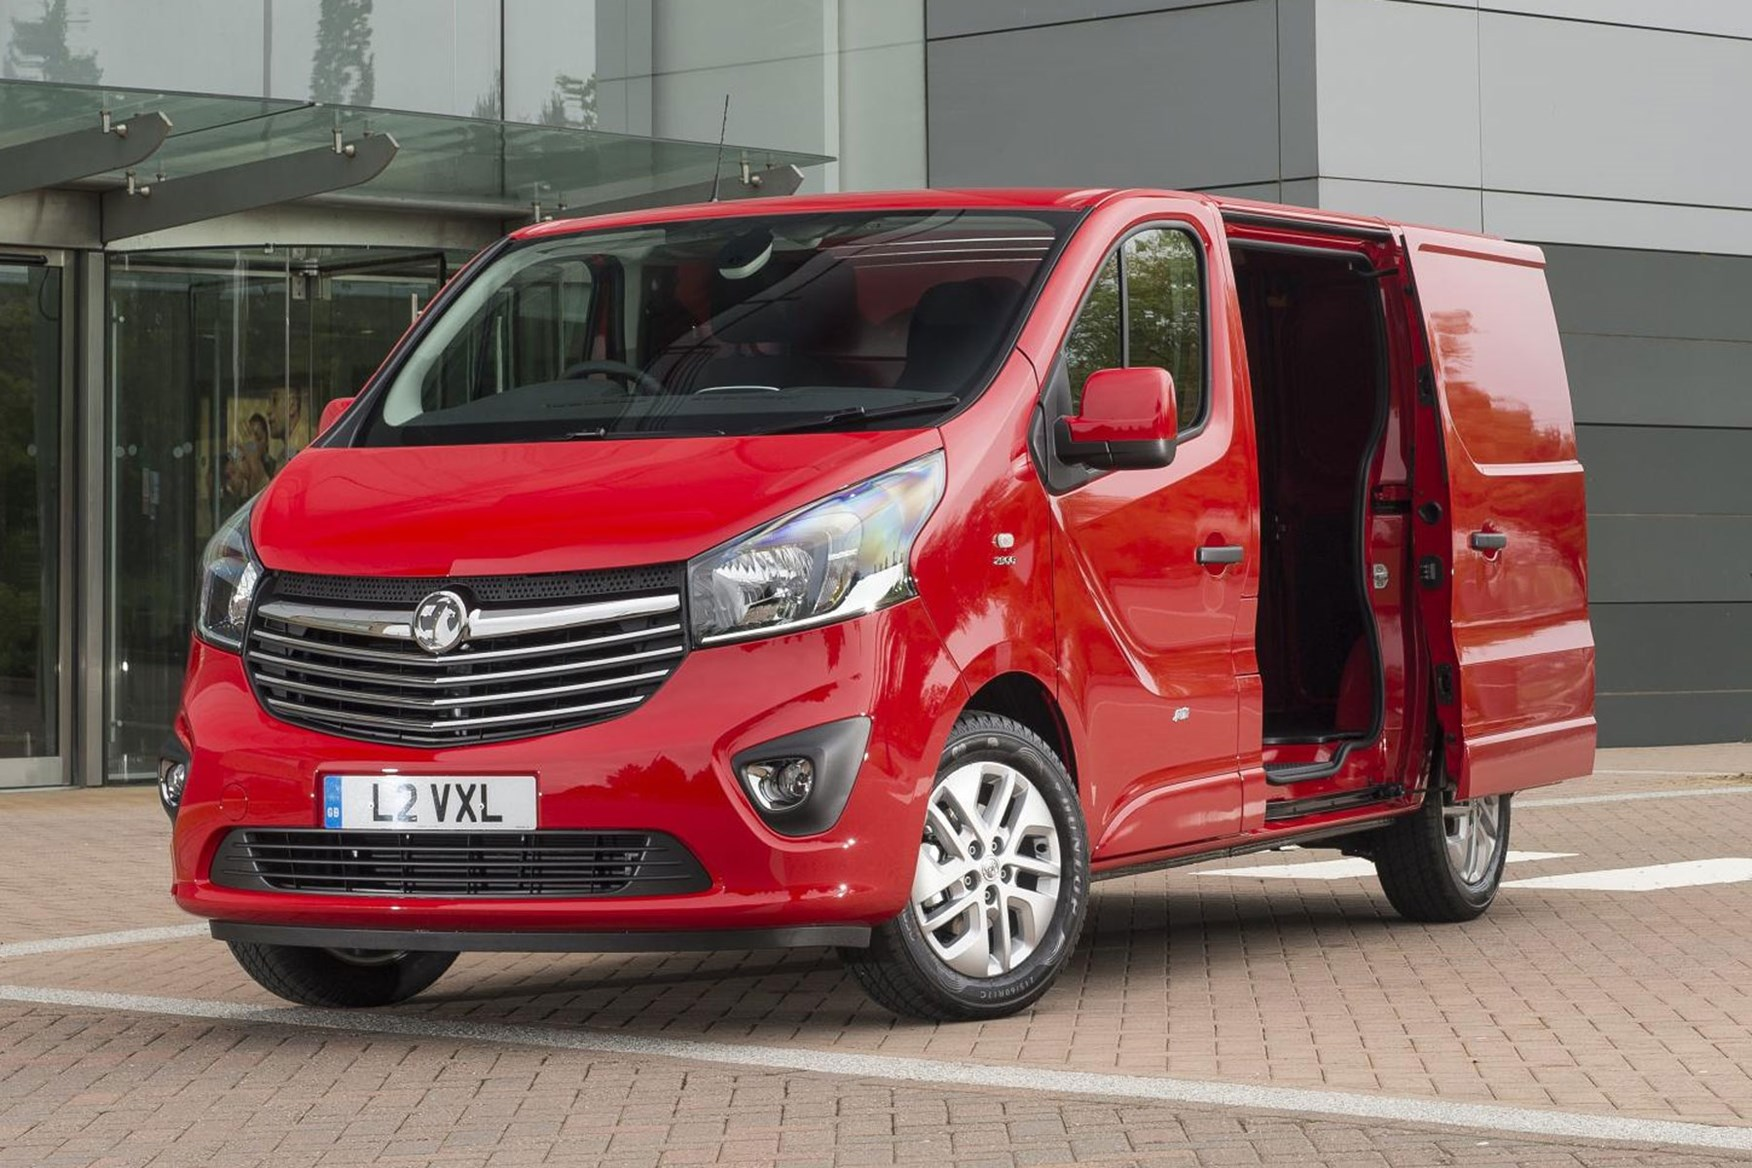 Vauxhall Vivaro dimension - front view, red, with sliding side door open